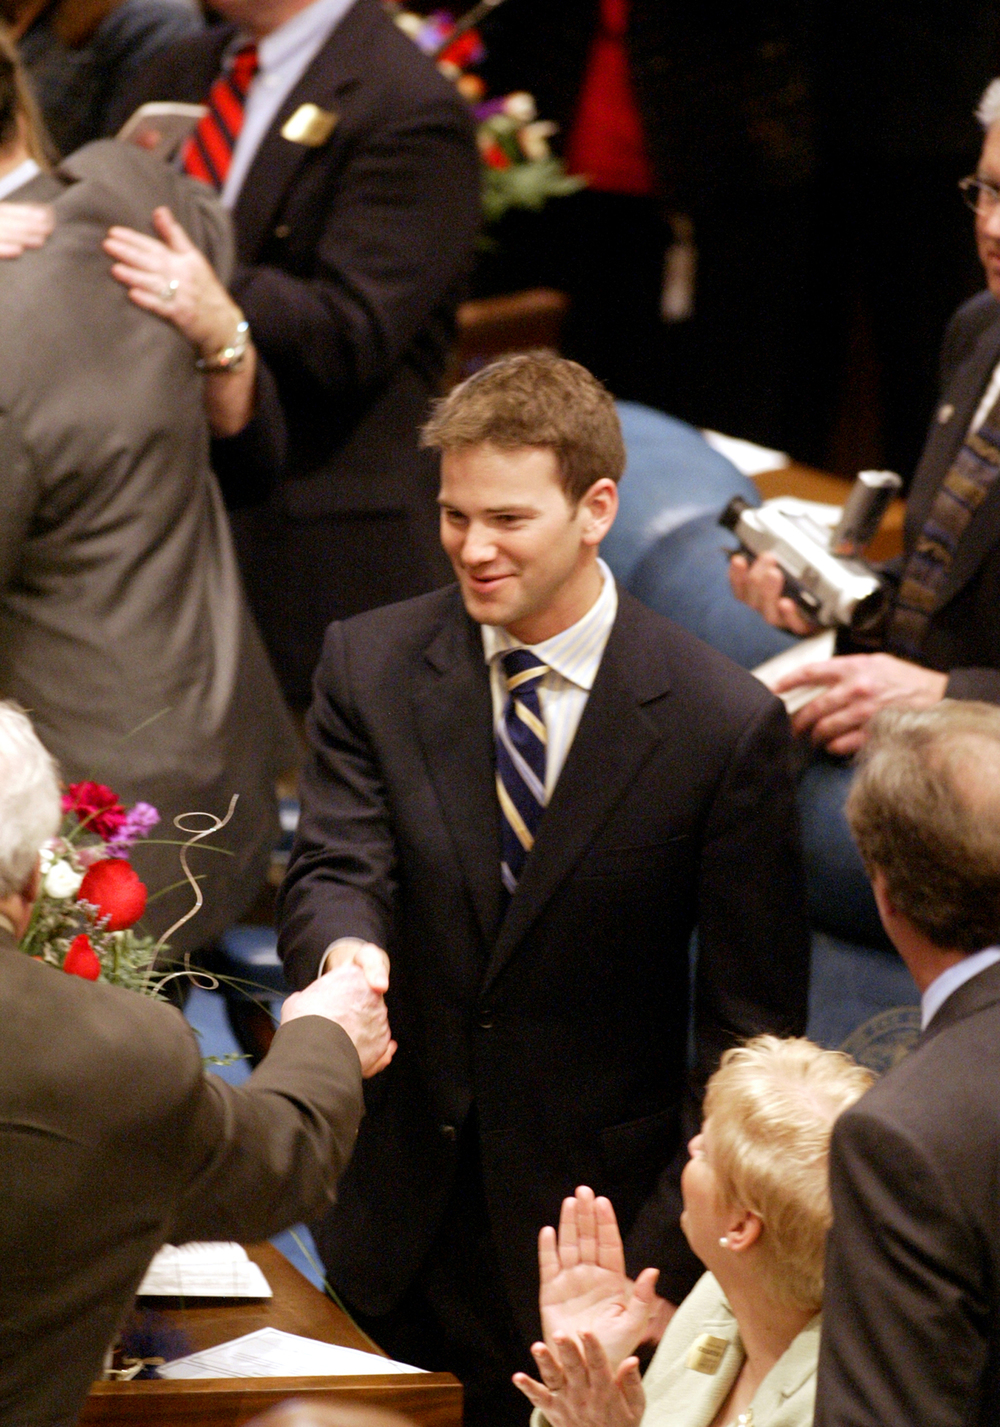 State Rep. Aaron Schock, R-Peoria, is congratulated after being sworn in to the 94th General Assembly at the Illinois State Capital Wednesday, Jan. 12, 2005. File/The State Journal-Register